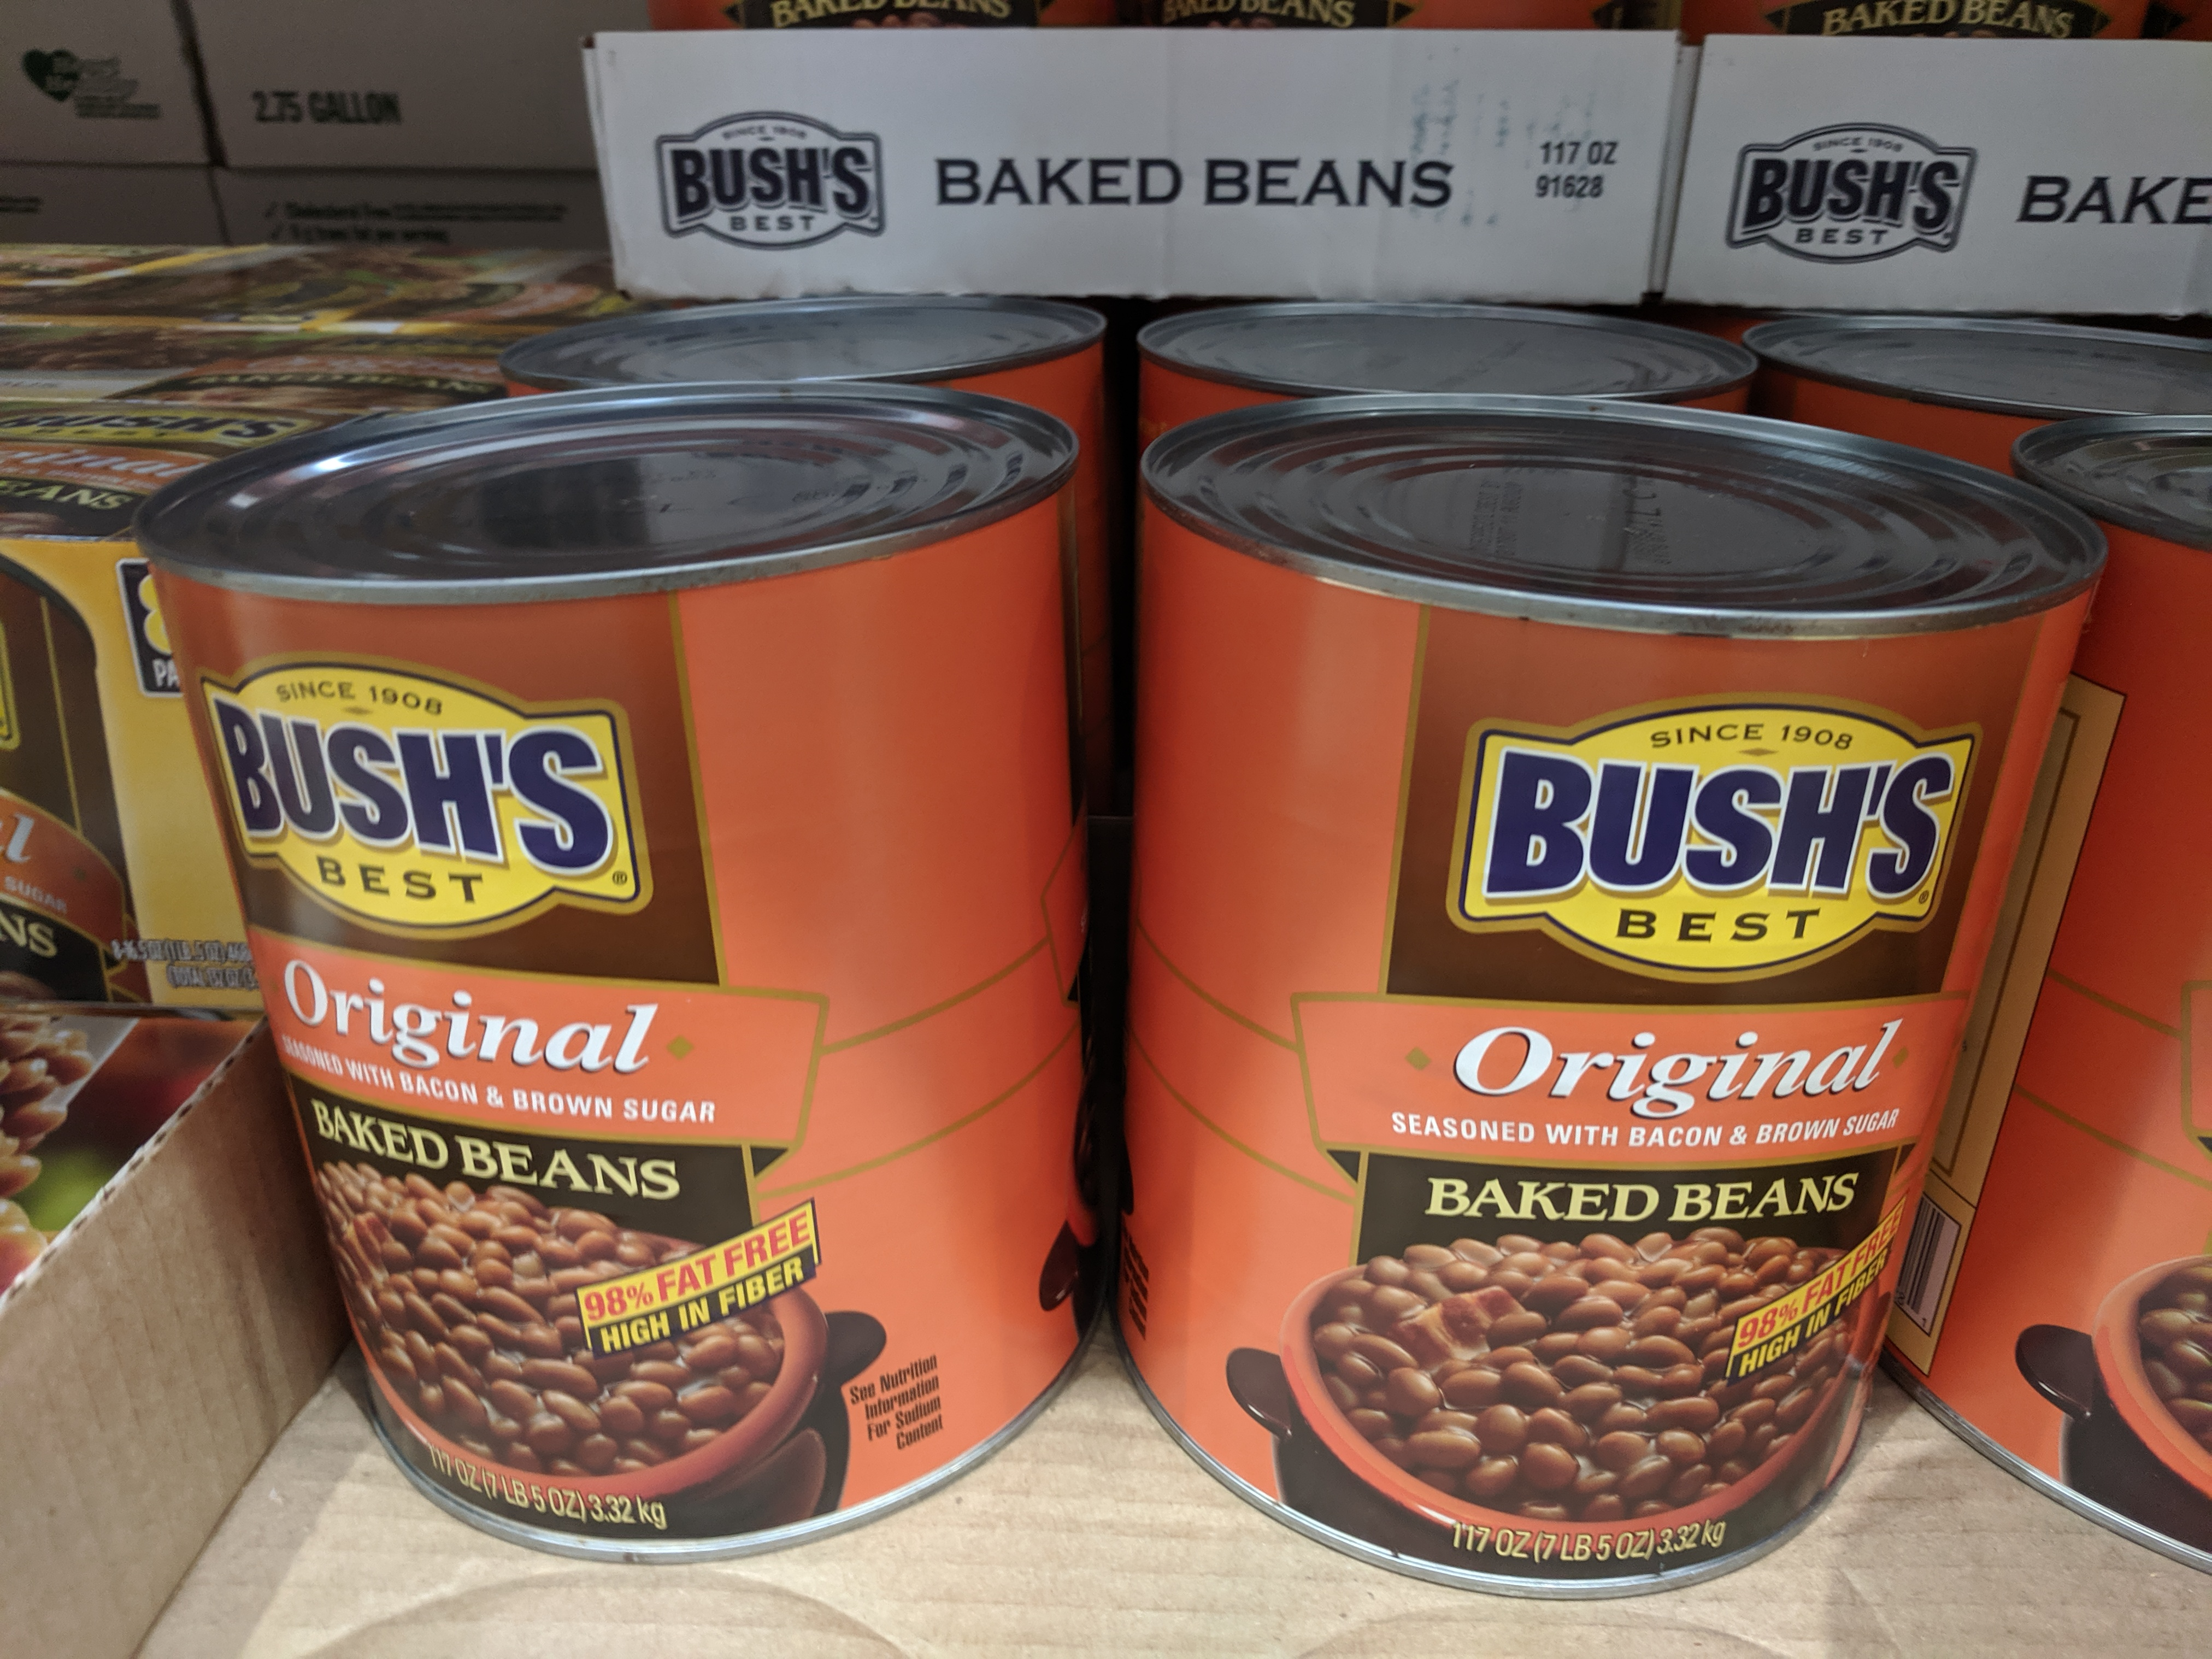 Bush's Baked Beans Original Costco Discontinued